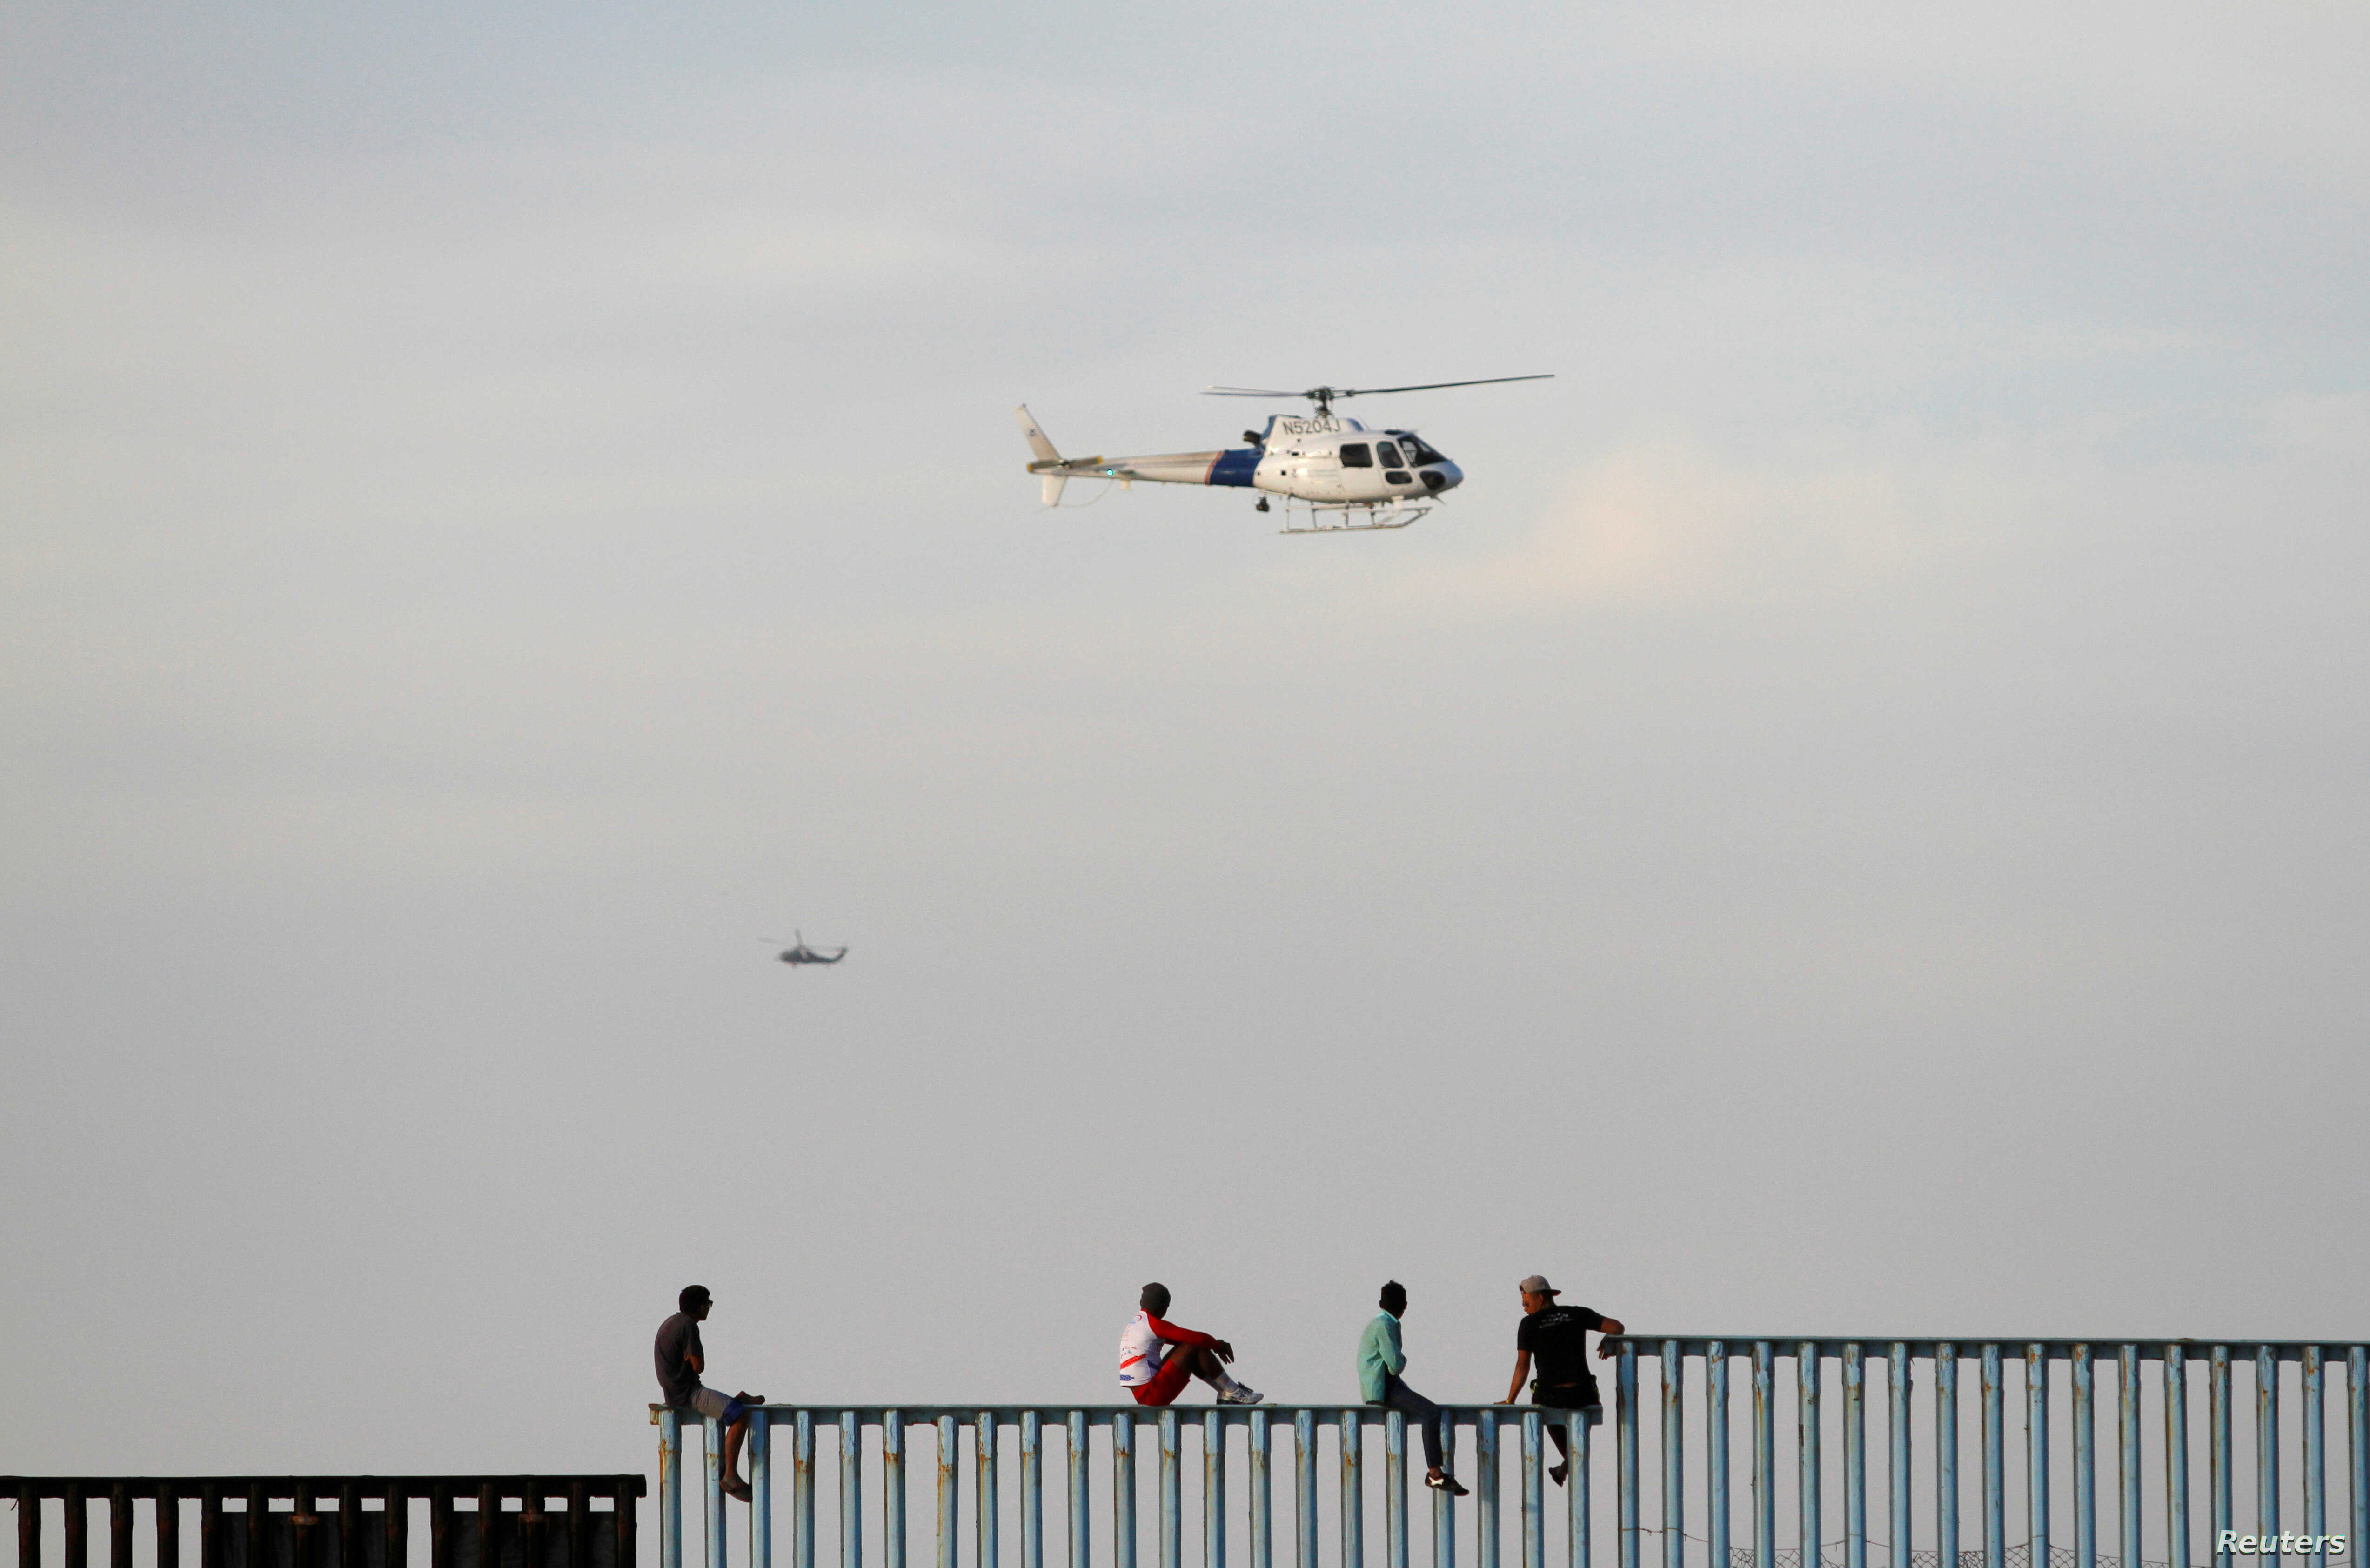 Migrants, part of a caravan of thousands trying to reach the U.S., sit on top of the border fence between Mexico and the United States, after arriving in Tijuana, Mexico, Nov. 13, 2018.